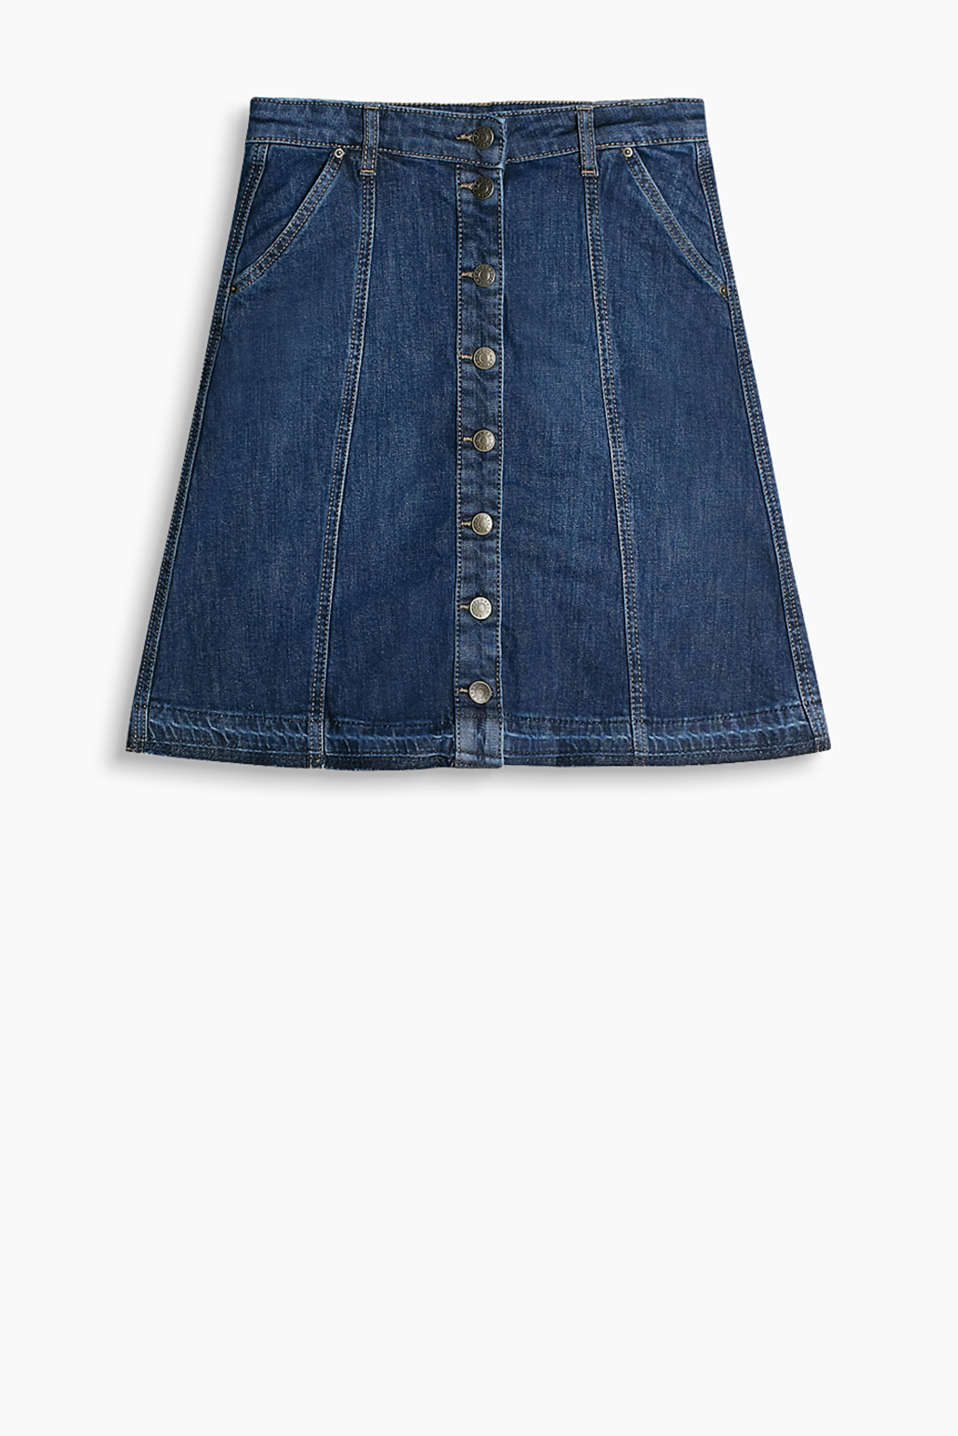 Flared denim skirt with a button placket and fashionably frayed hem